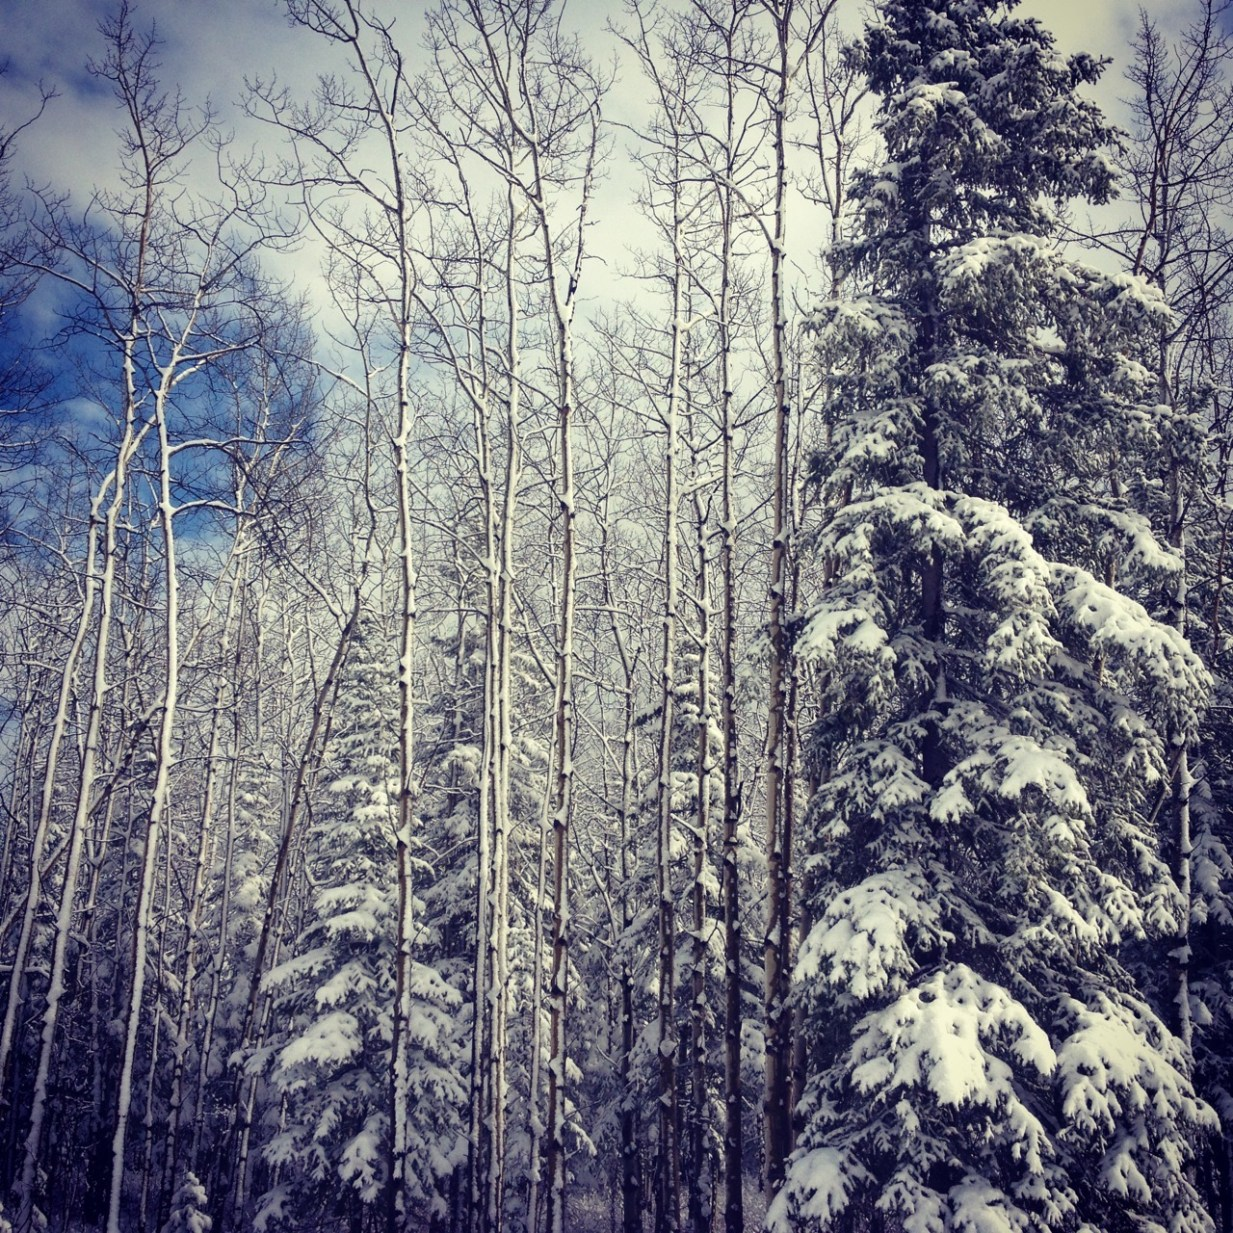 It snowed quite a bit during my second week, blanketing the trees in beautiful white powder